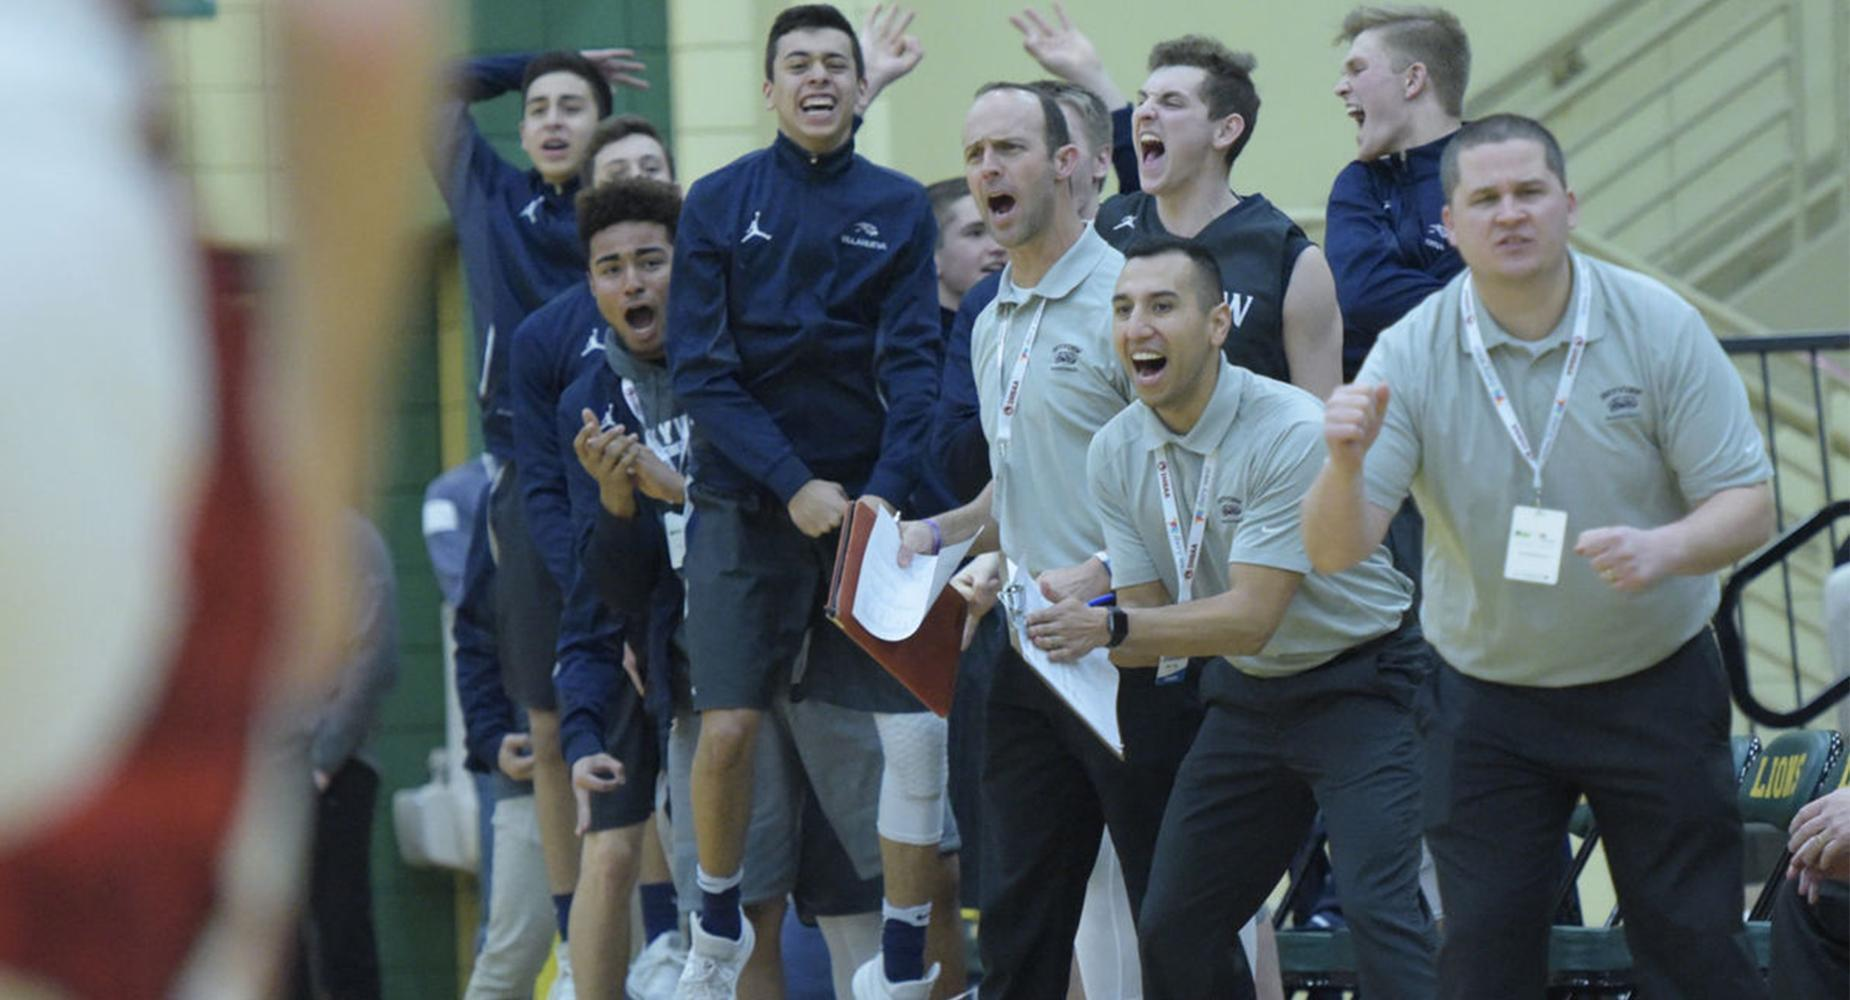 Basketball team and coach jump and cheer at sidelines